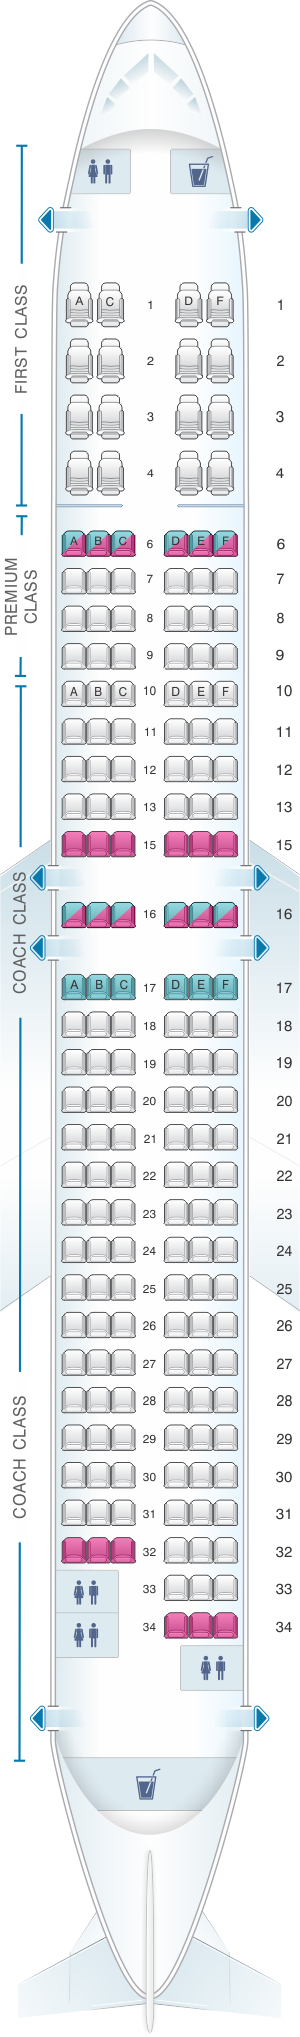 Seat map for Alaska Airlines - Horizon Air Boeing B737 900ER